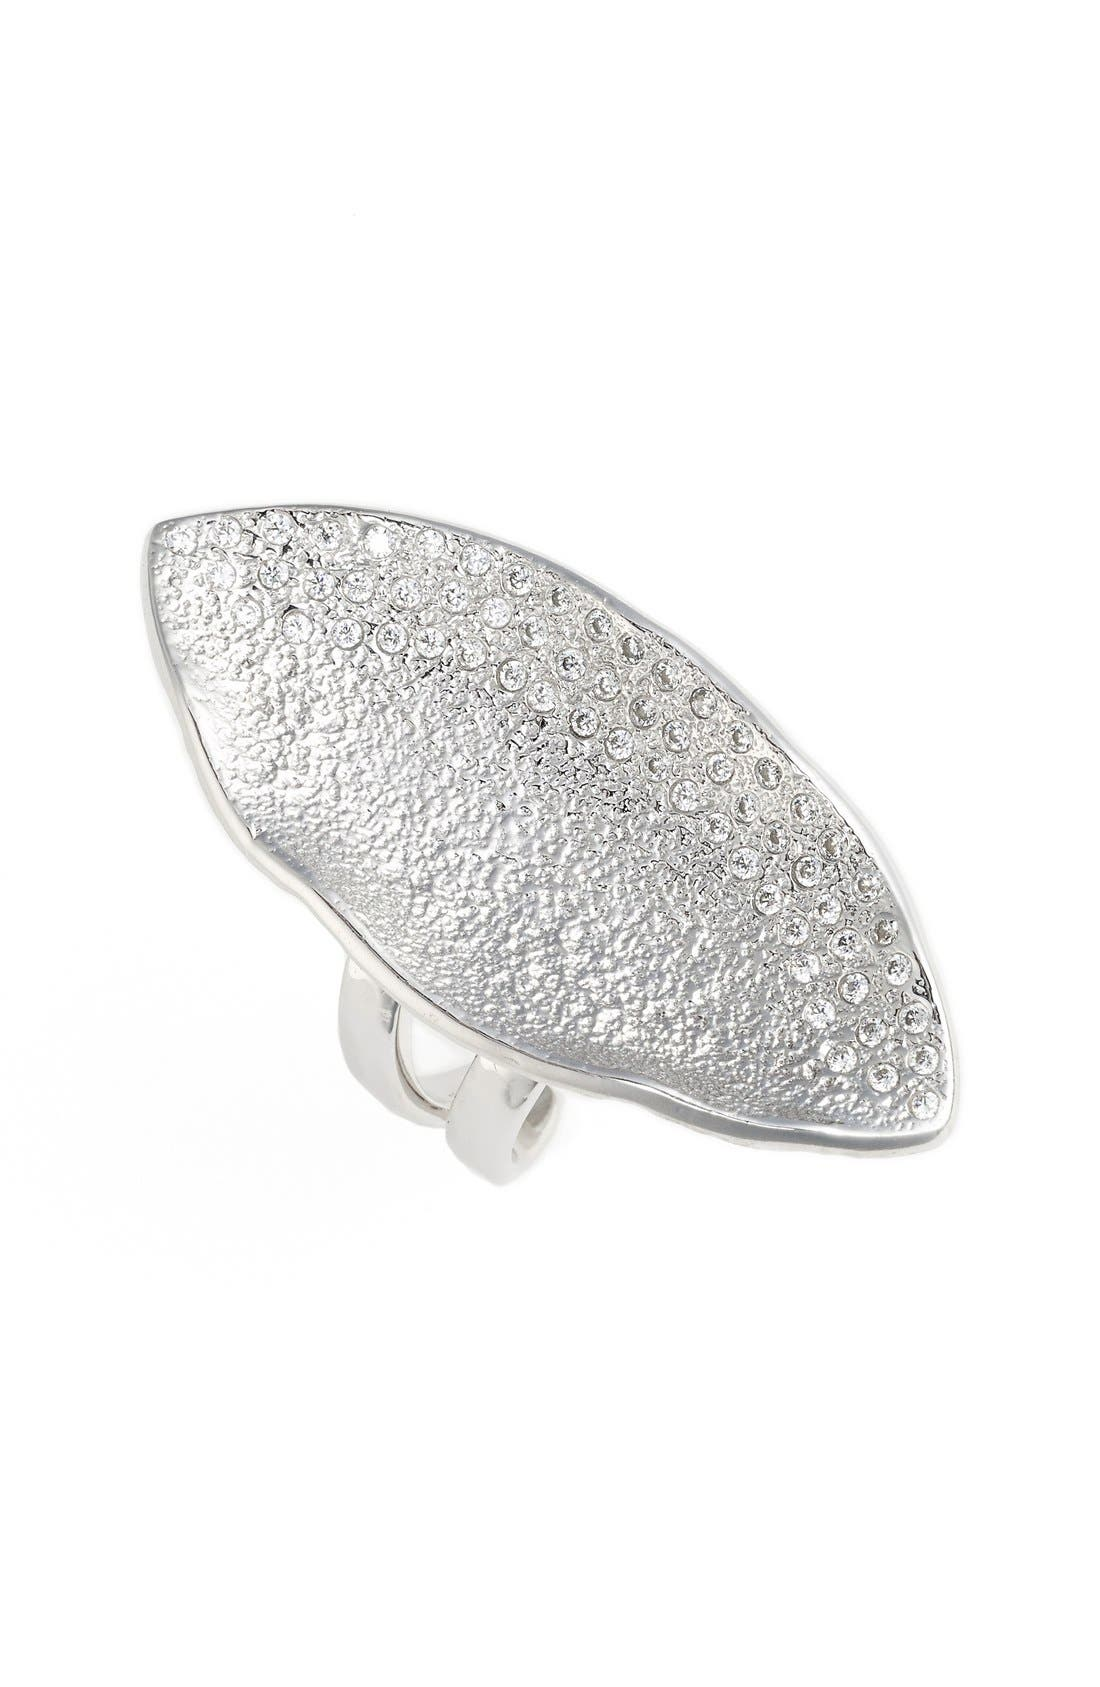 Alternate Image 1 Selected - Melinda Maria 'Mademoiselle' Pod Ring